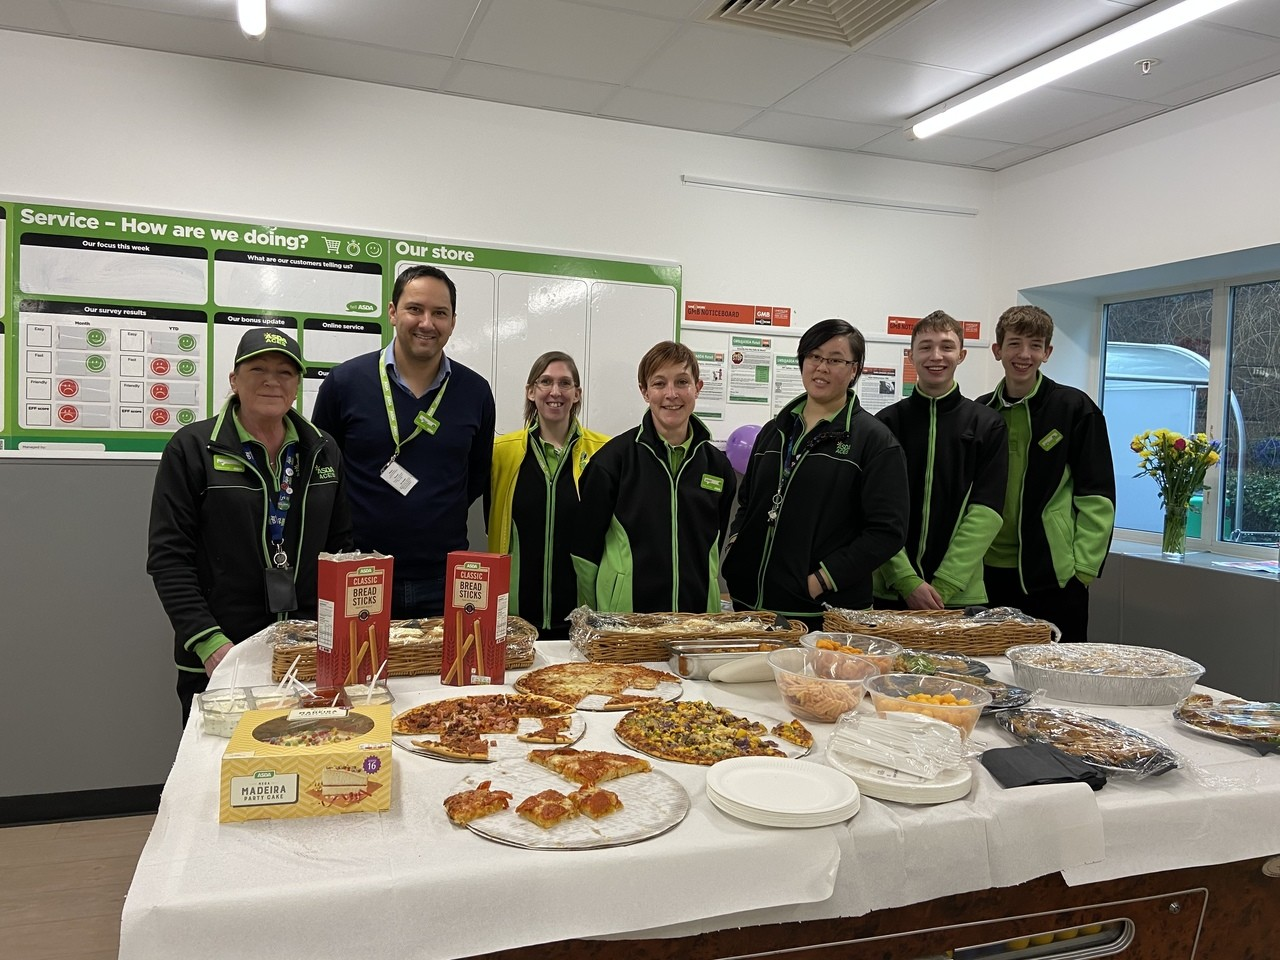 Saying thank you to the Asda Aces | Asda Biggleswade